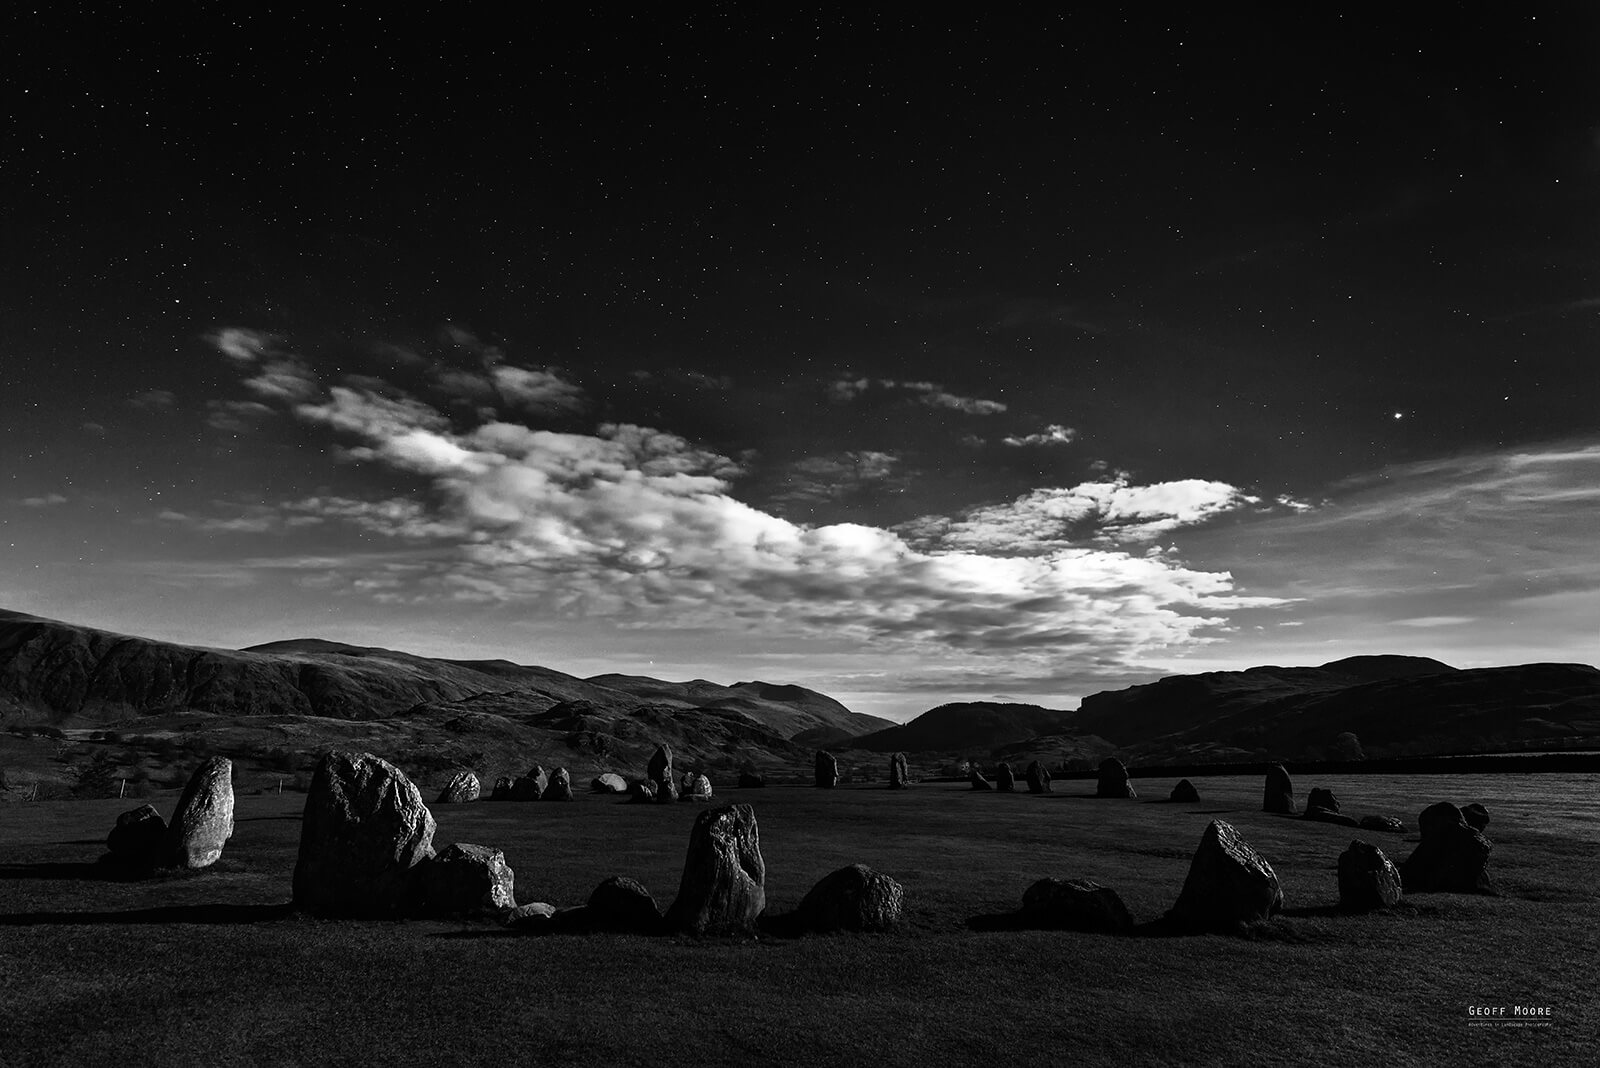 Moonstones of Castlerigg Stone Circle